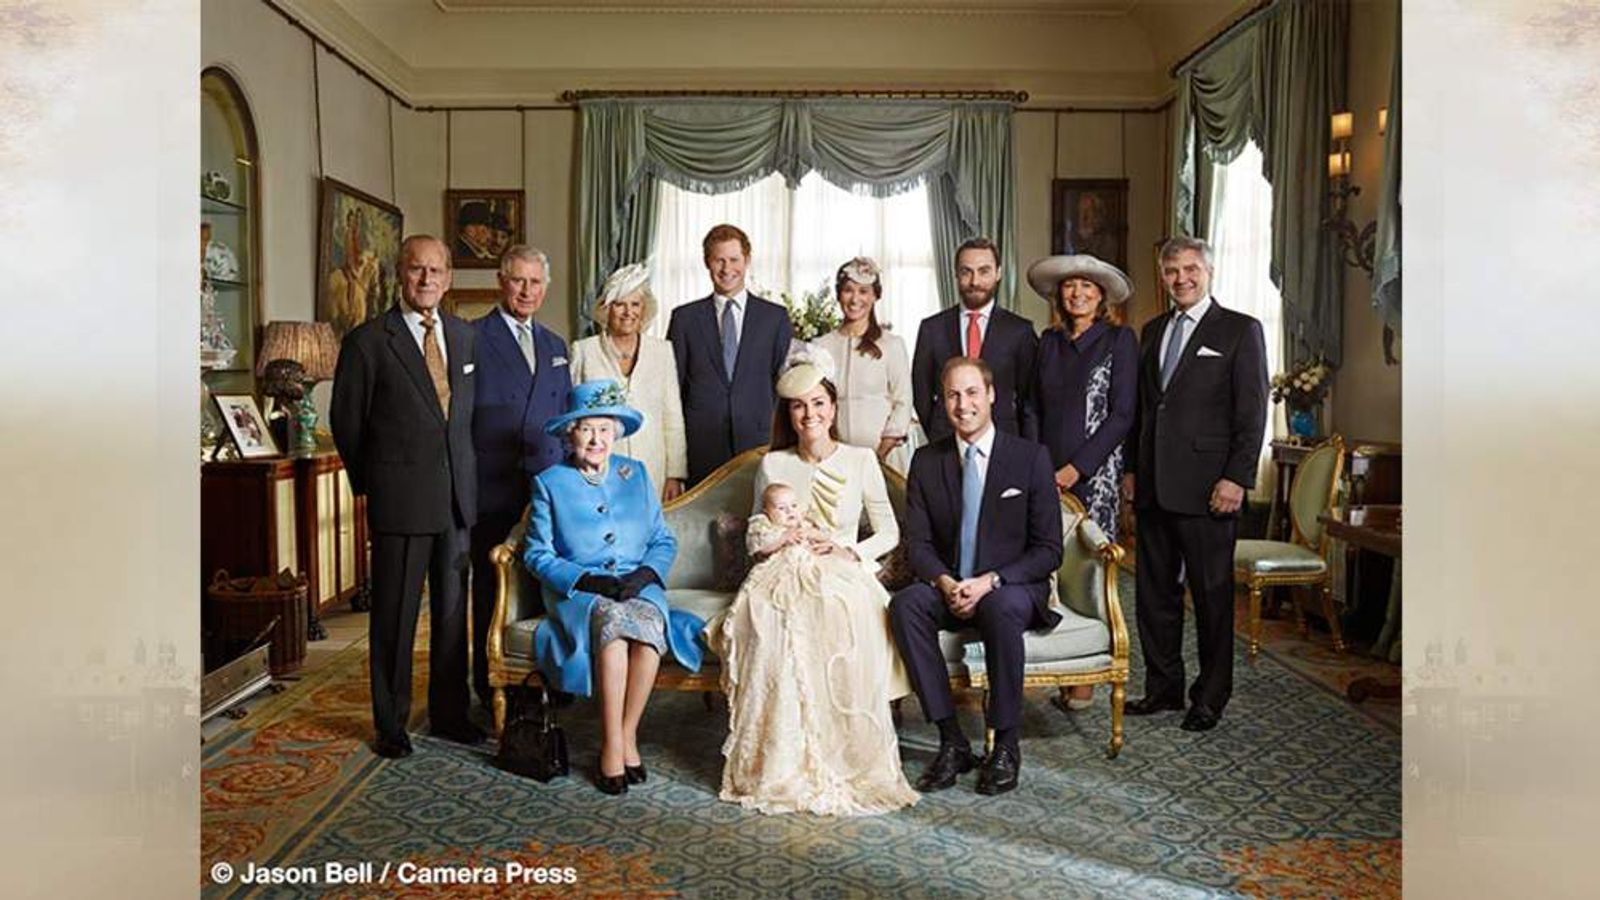 The Royal Family and the Middletons following the christening of Prince George